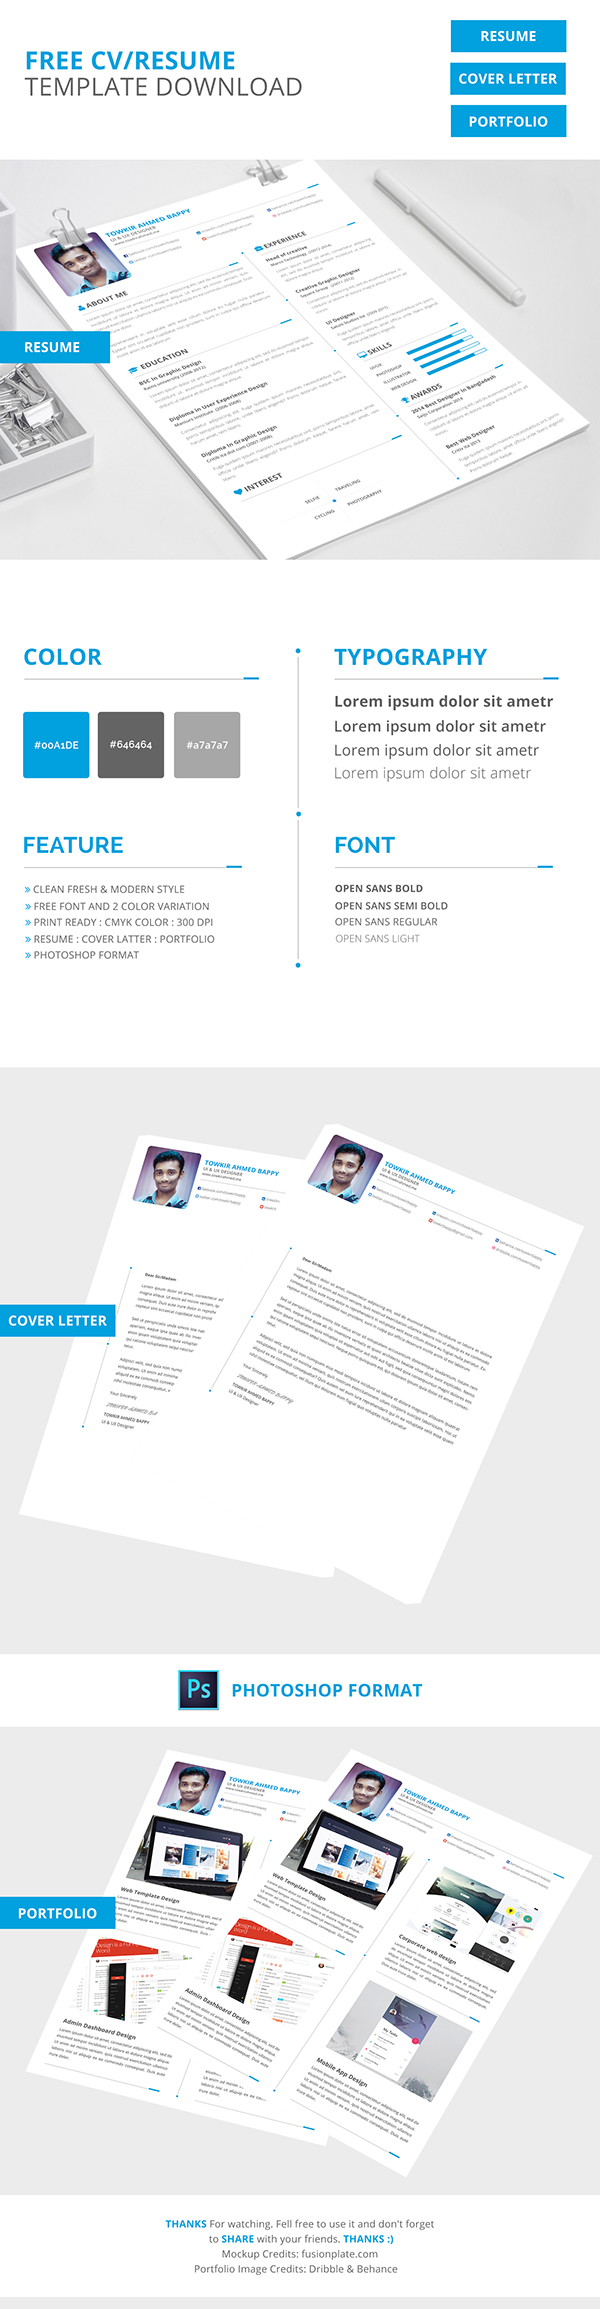 Web Design Resume Template Free Download Free Creative Resume Cv Template Download On Pantone Canvas Gallery